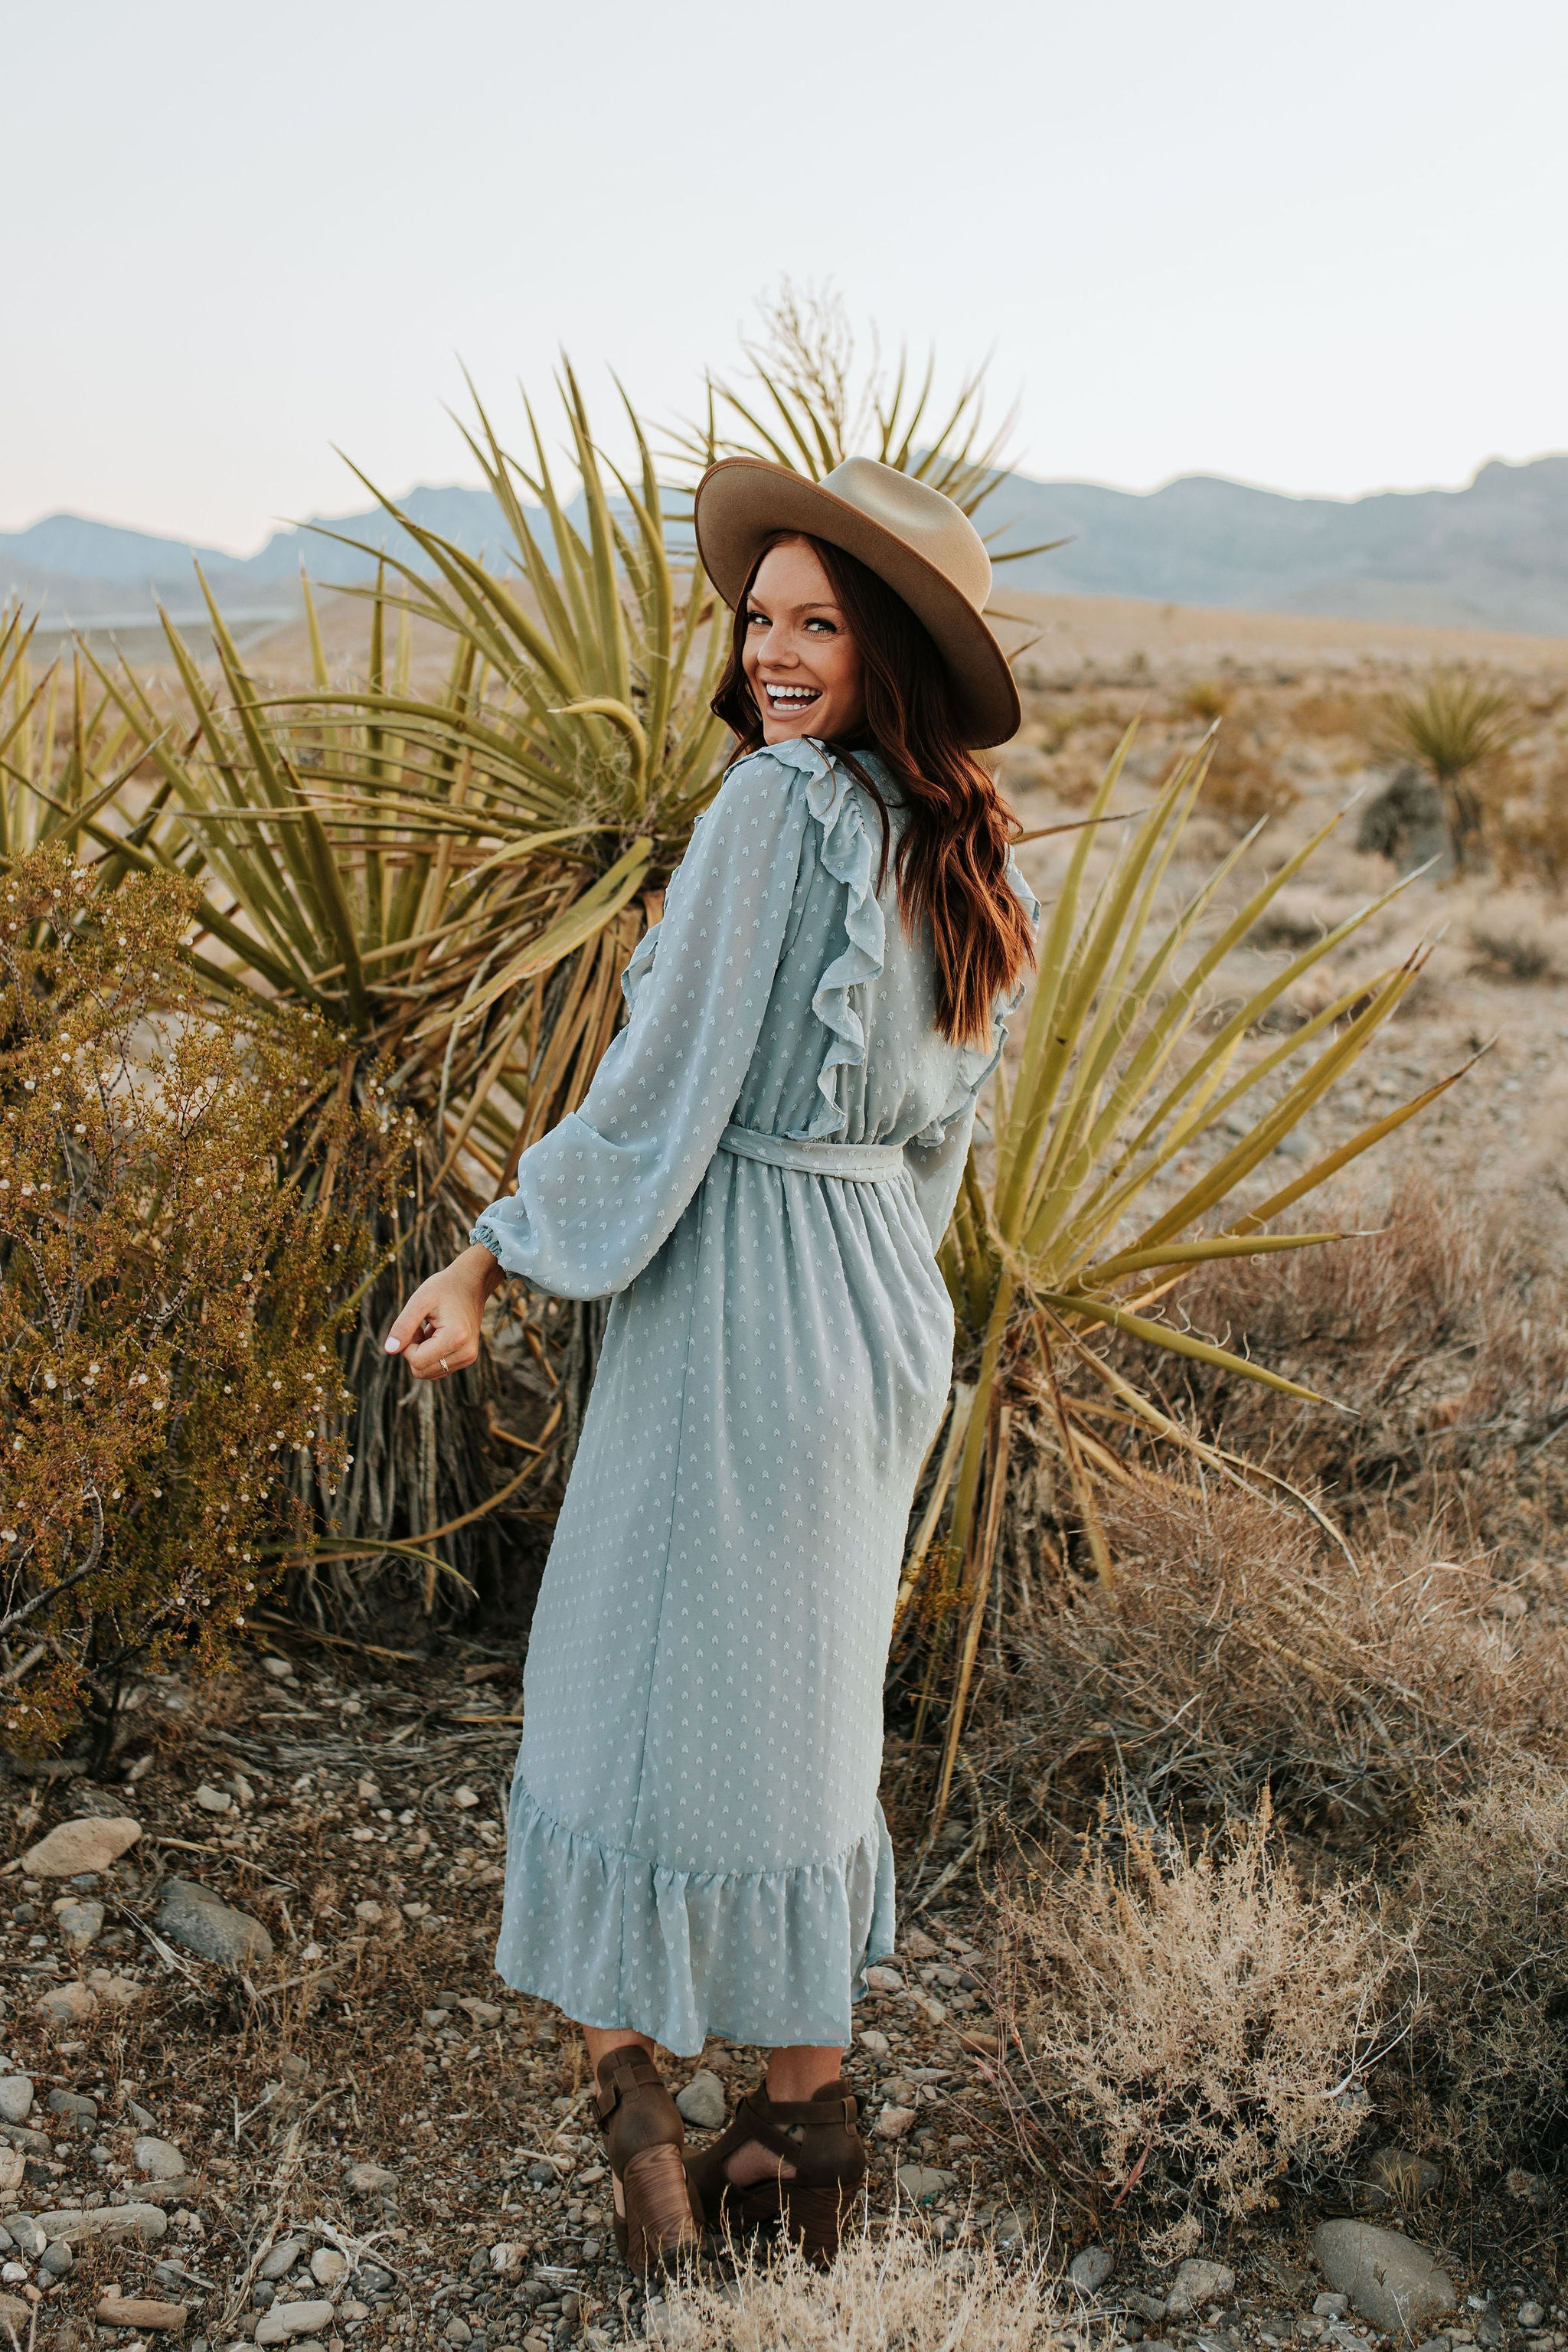 THE SWEETER THAN FICTION RUFFLE MAXI DRESS IN DUSTY BLUE